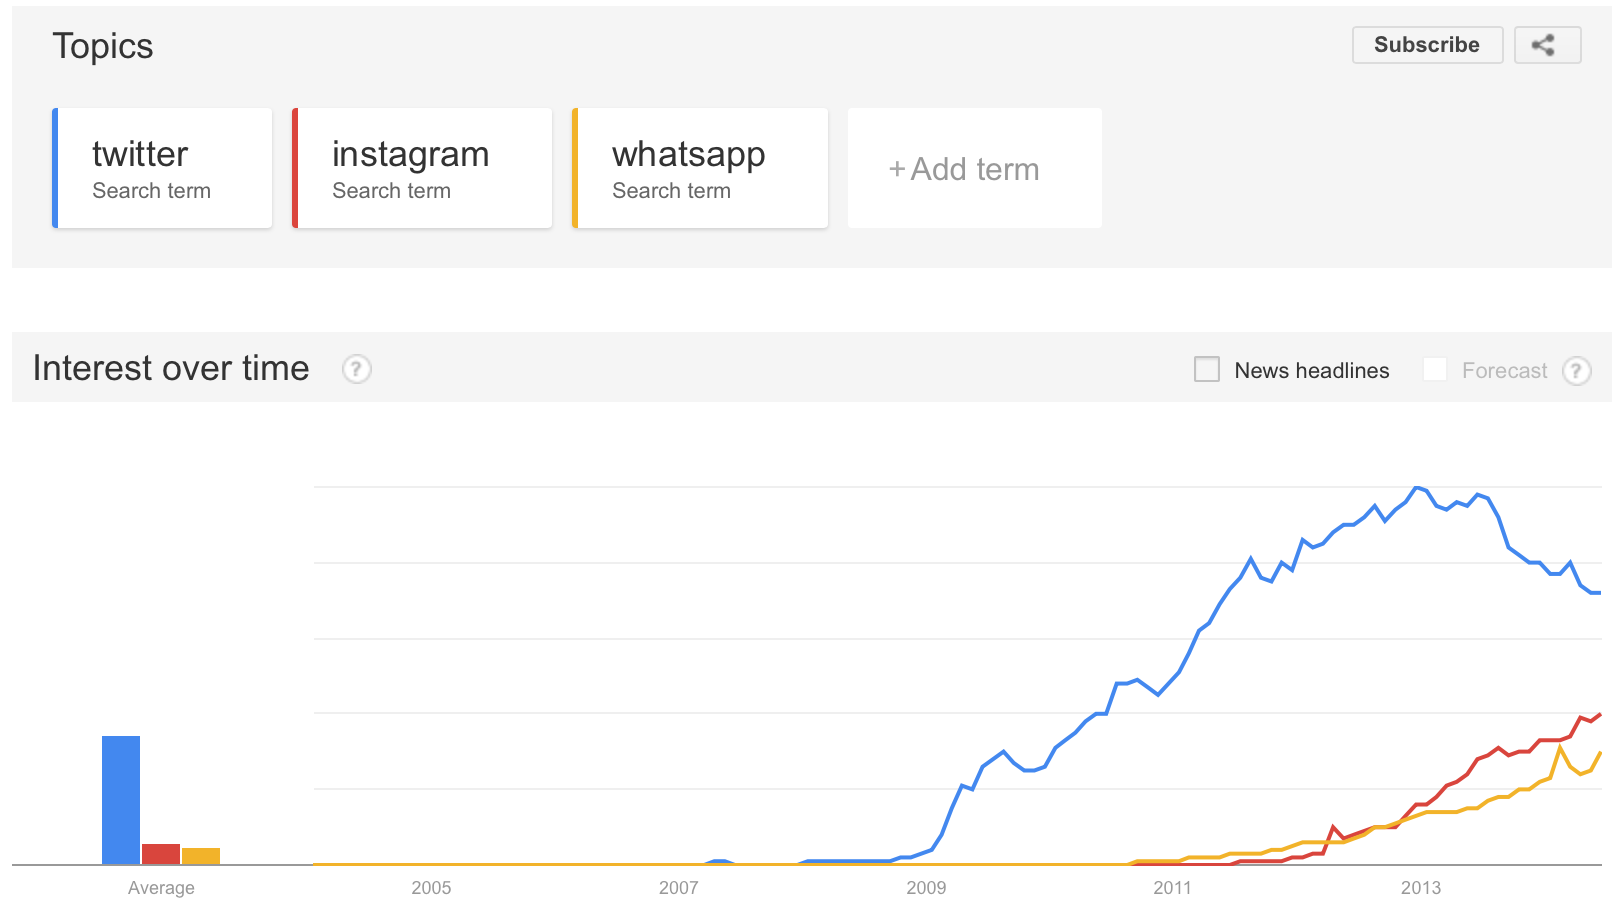 Interesting Google Trends Screenshot: AKA, When Twitter lost its mojo http://t.co/zgMm0hQPLQ via @sama